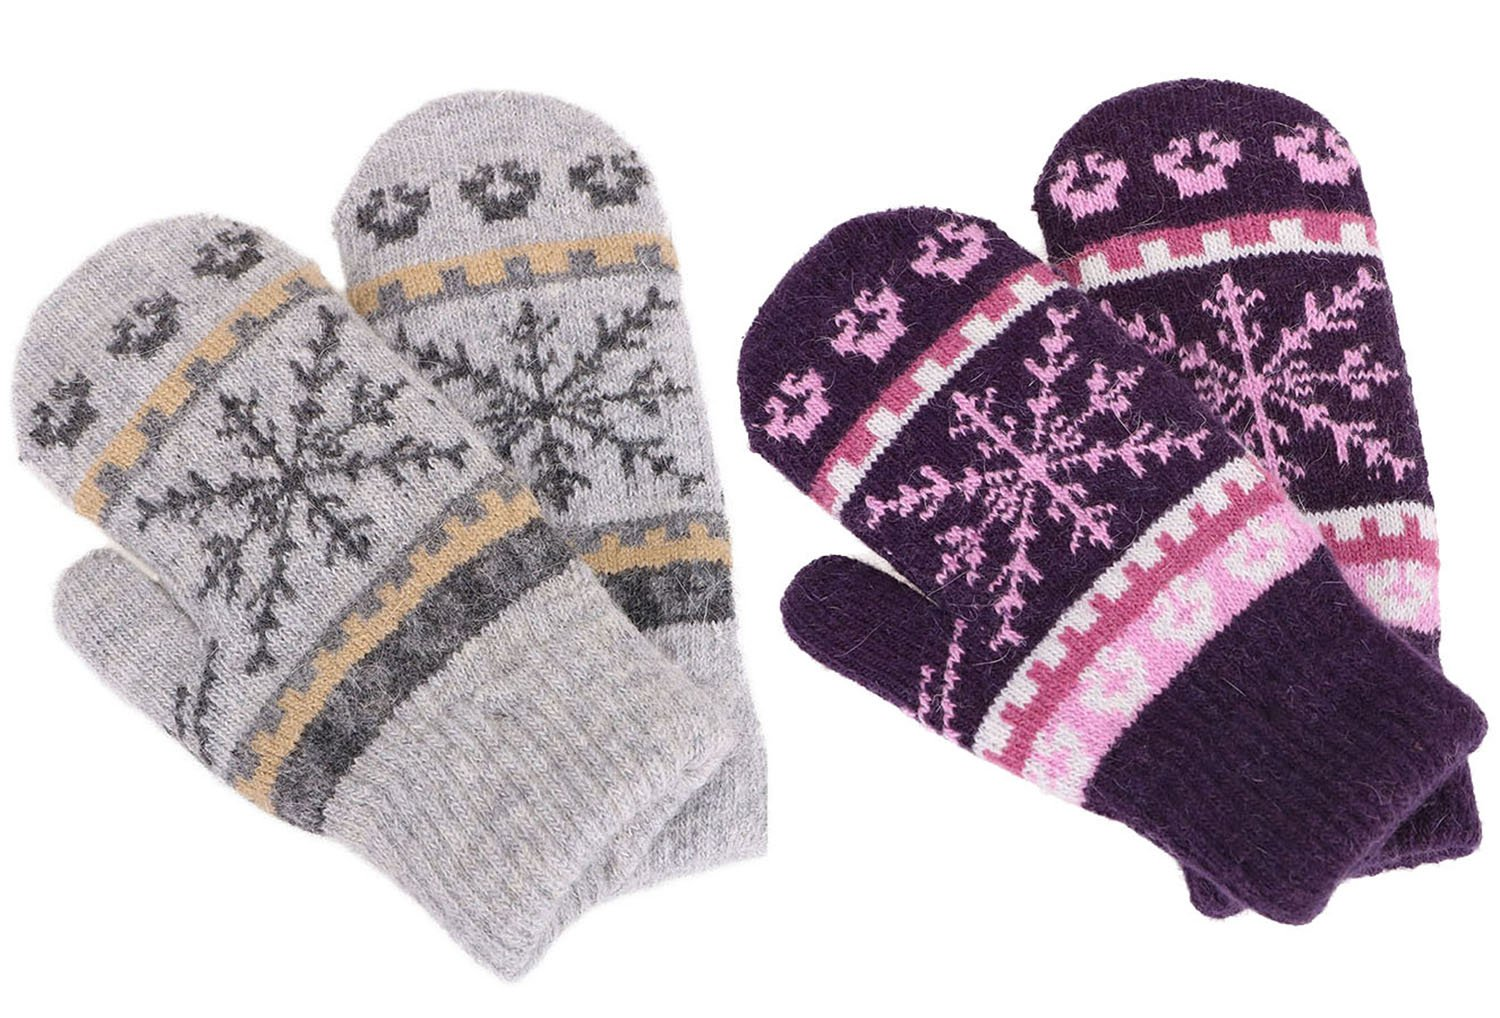 Women's Winter Fair Isle Knit Sherpa Lined Mittens - Set of 2 Pairs 2 Set Black/White